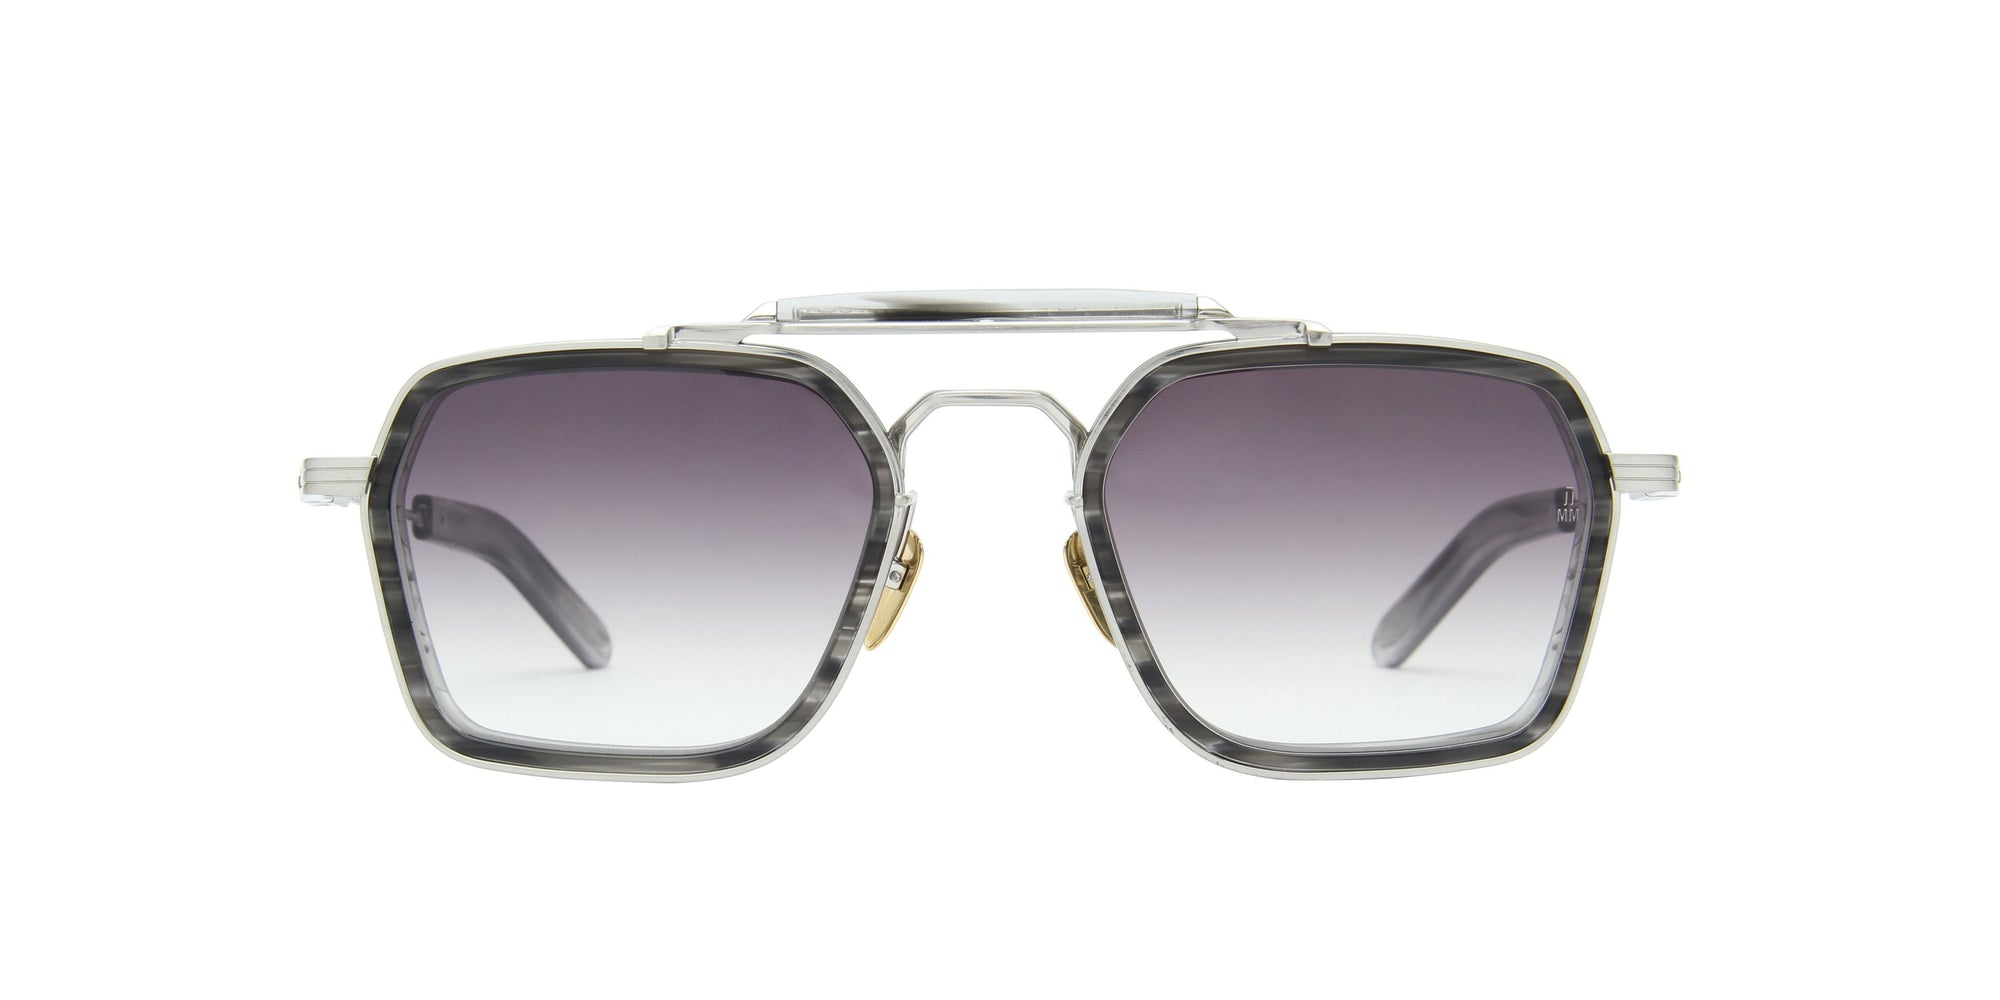 Jacques Marie Mage - Kilpatrick Silver/Gray Square Unisex Sunglasses - 54mm-Sunglasses-Designer Eyes